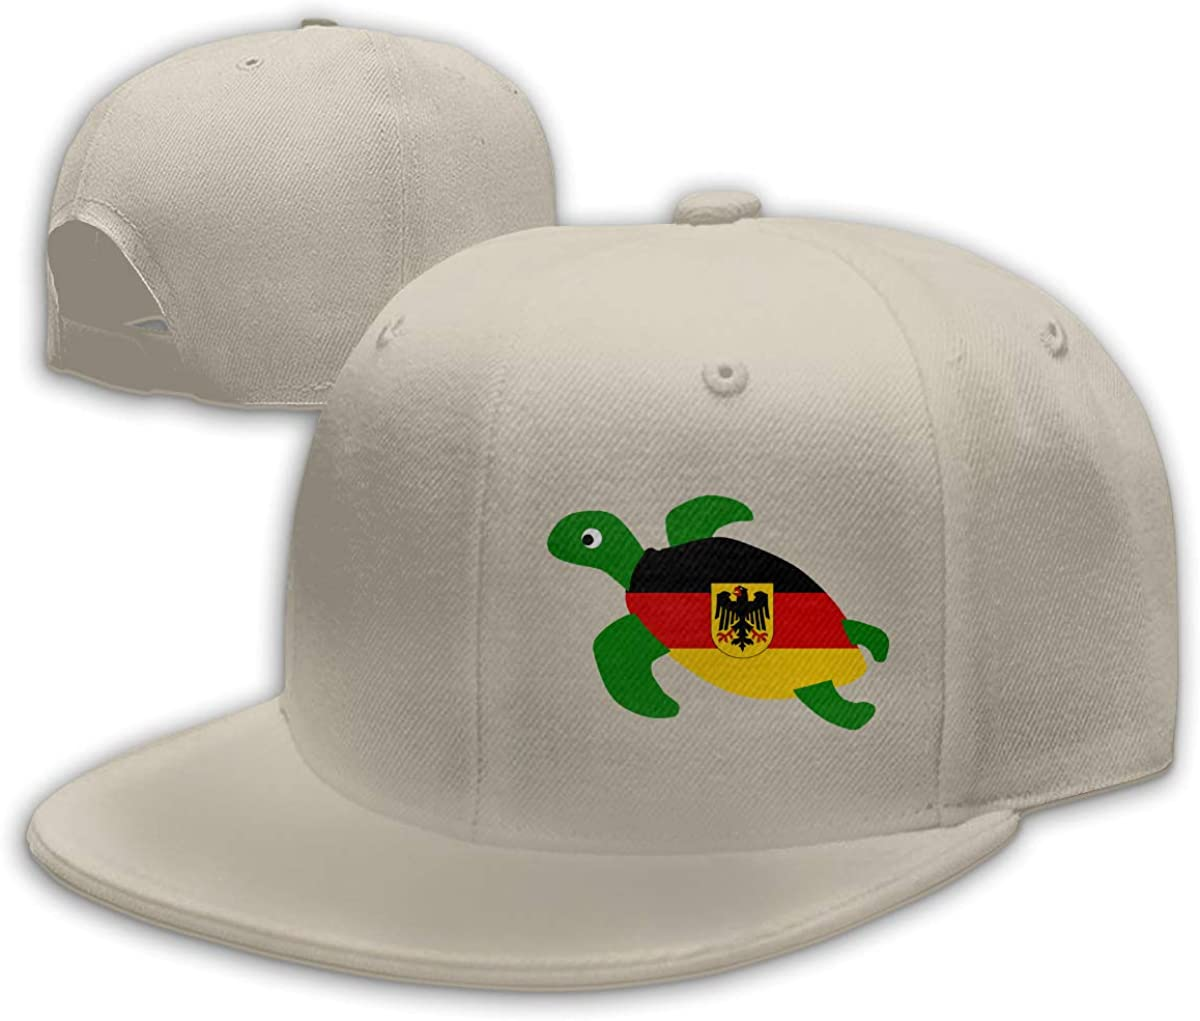 Sea Turtle Deutschland Flag Adjustable Flat Bill Snapback Baseball Hip-hop Cap Hat